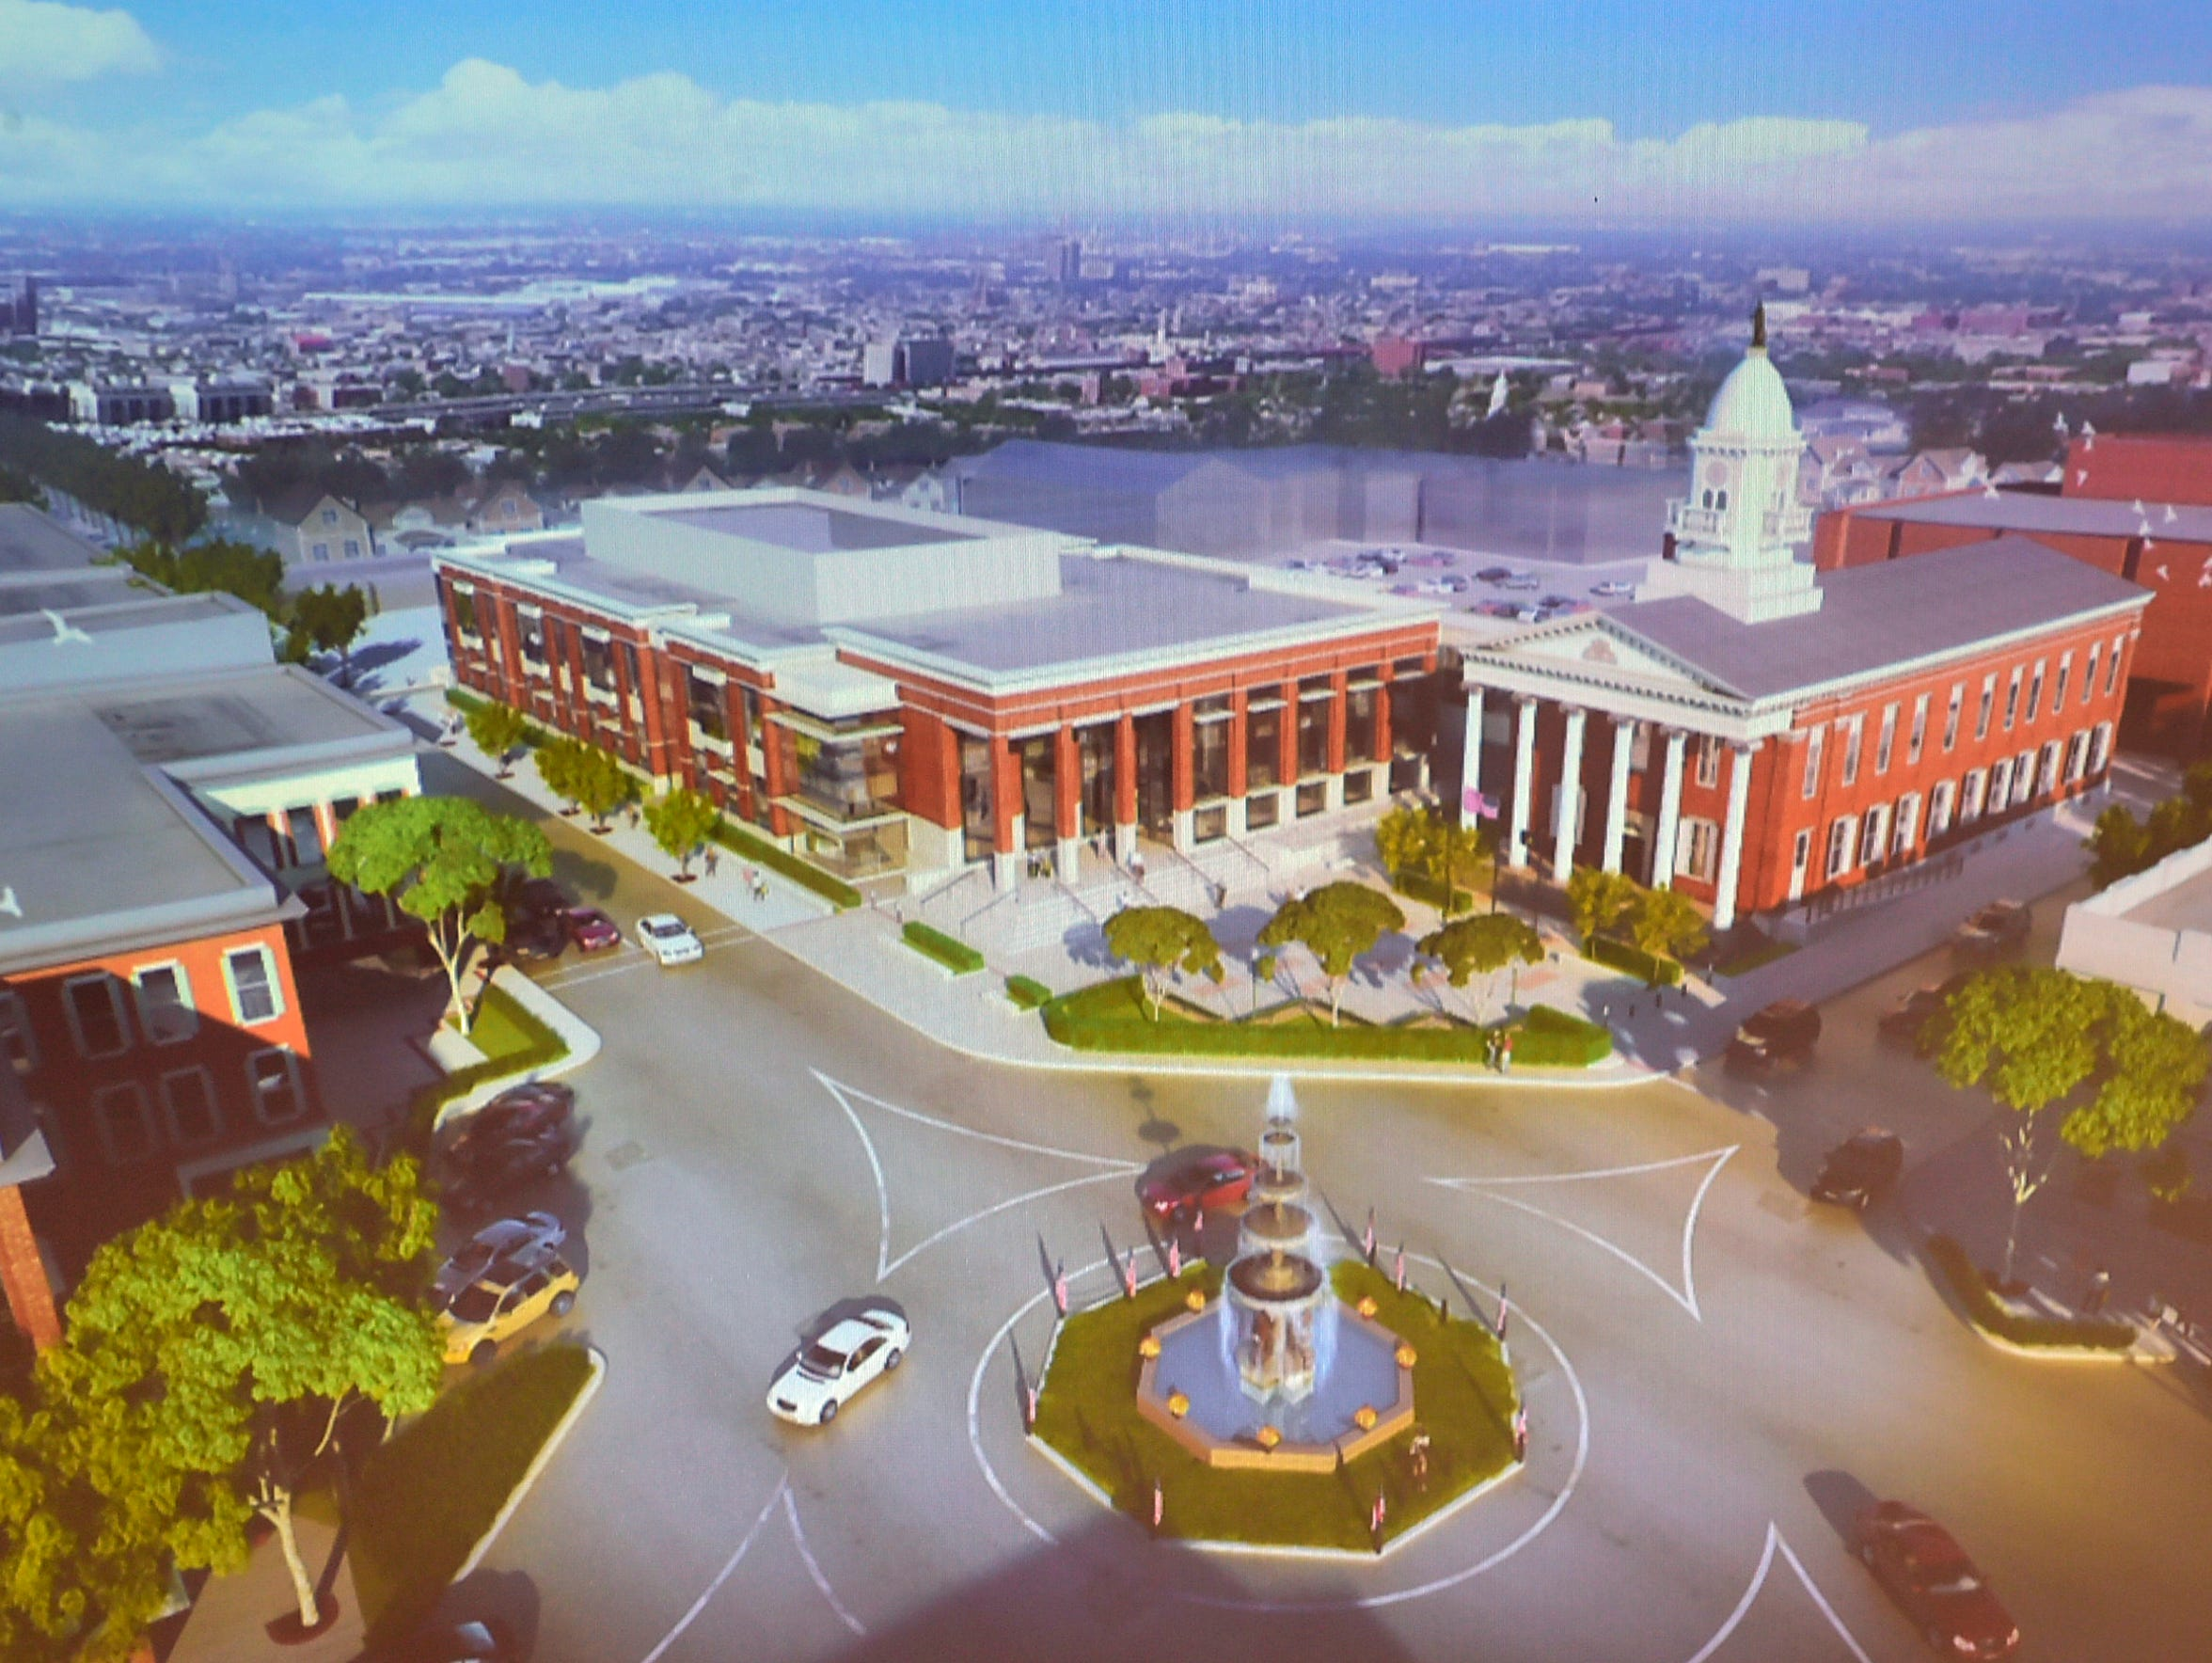 Computer illustrations of the proposed courthouse were on display during the Franklin County Court Facility Improvement Project open house on Thursday, January 11, 2018 at the county annex.